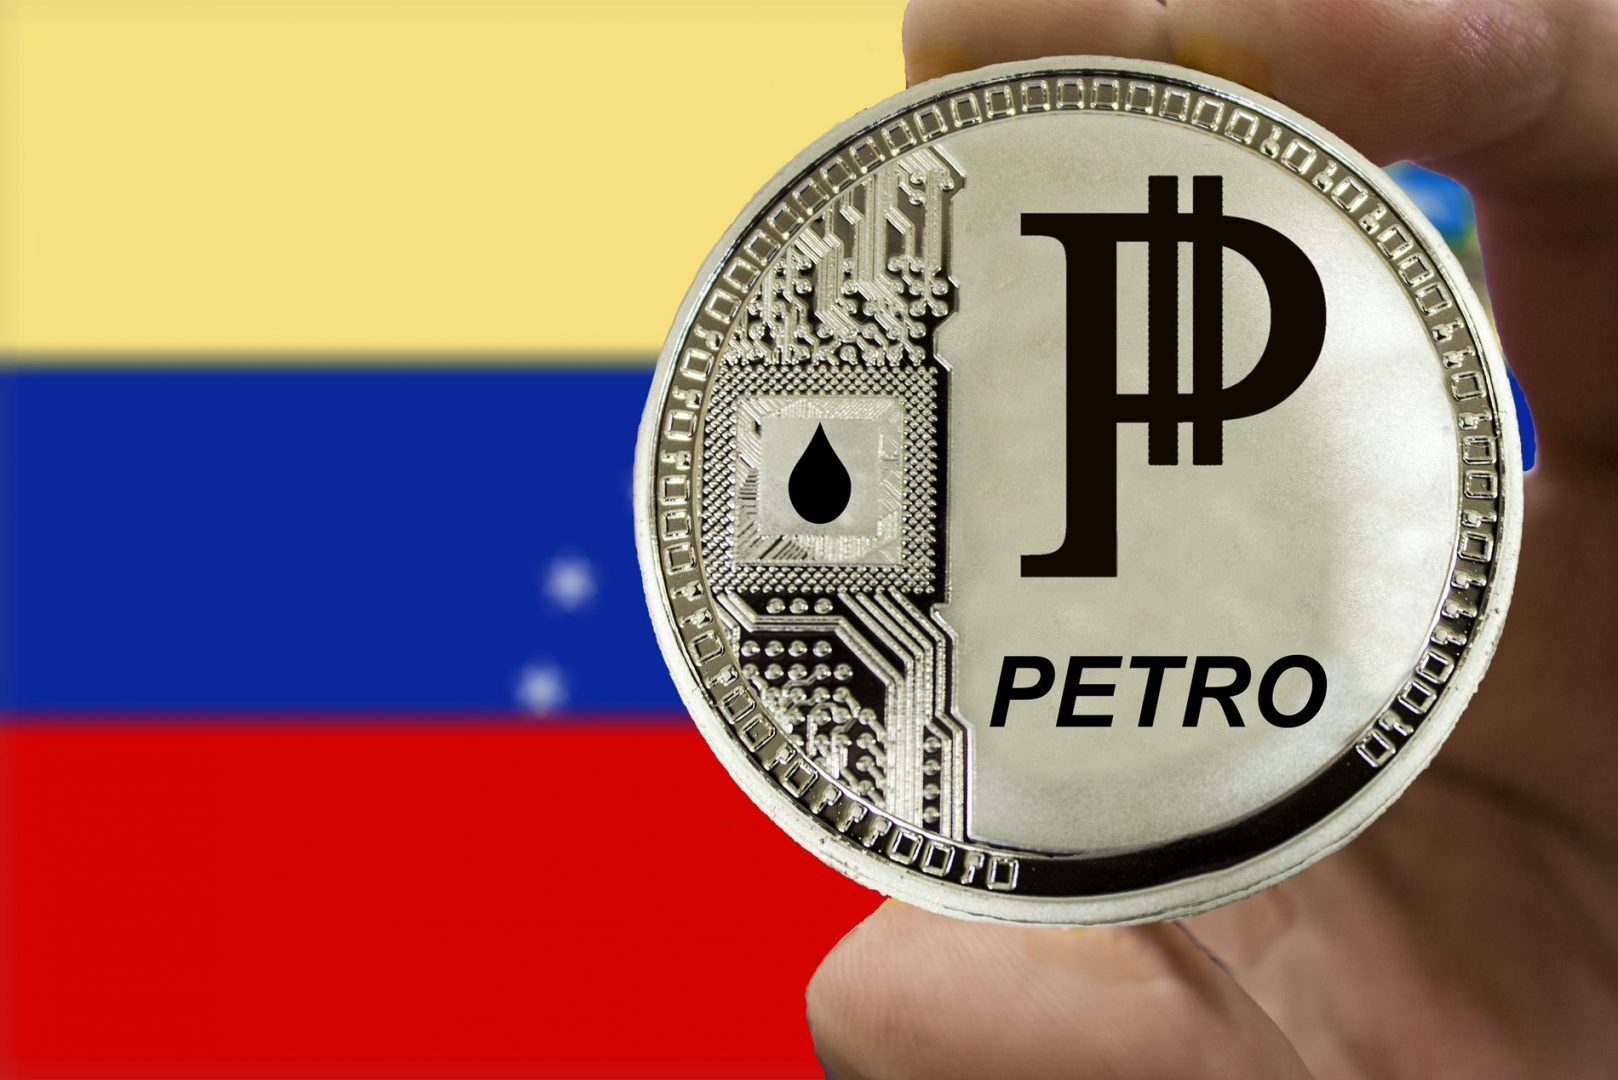 Petro-pegged fiat currency